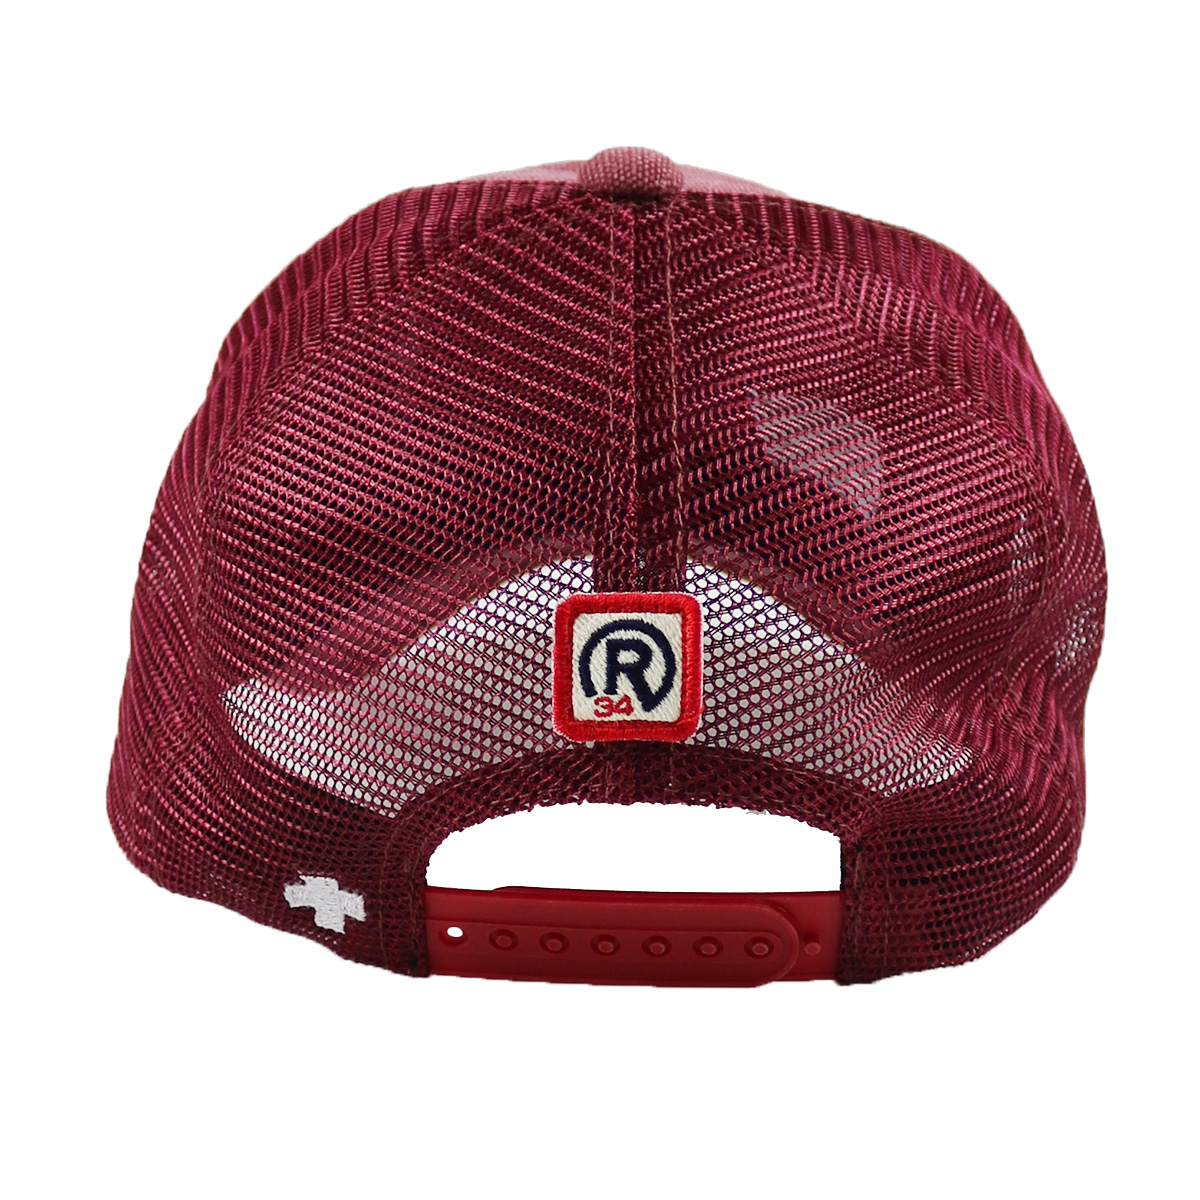 CRAFT MESH CAP